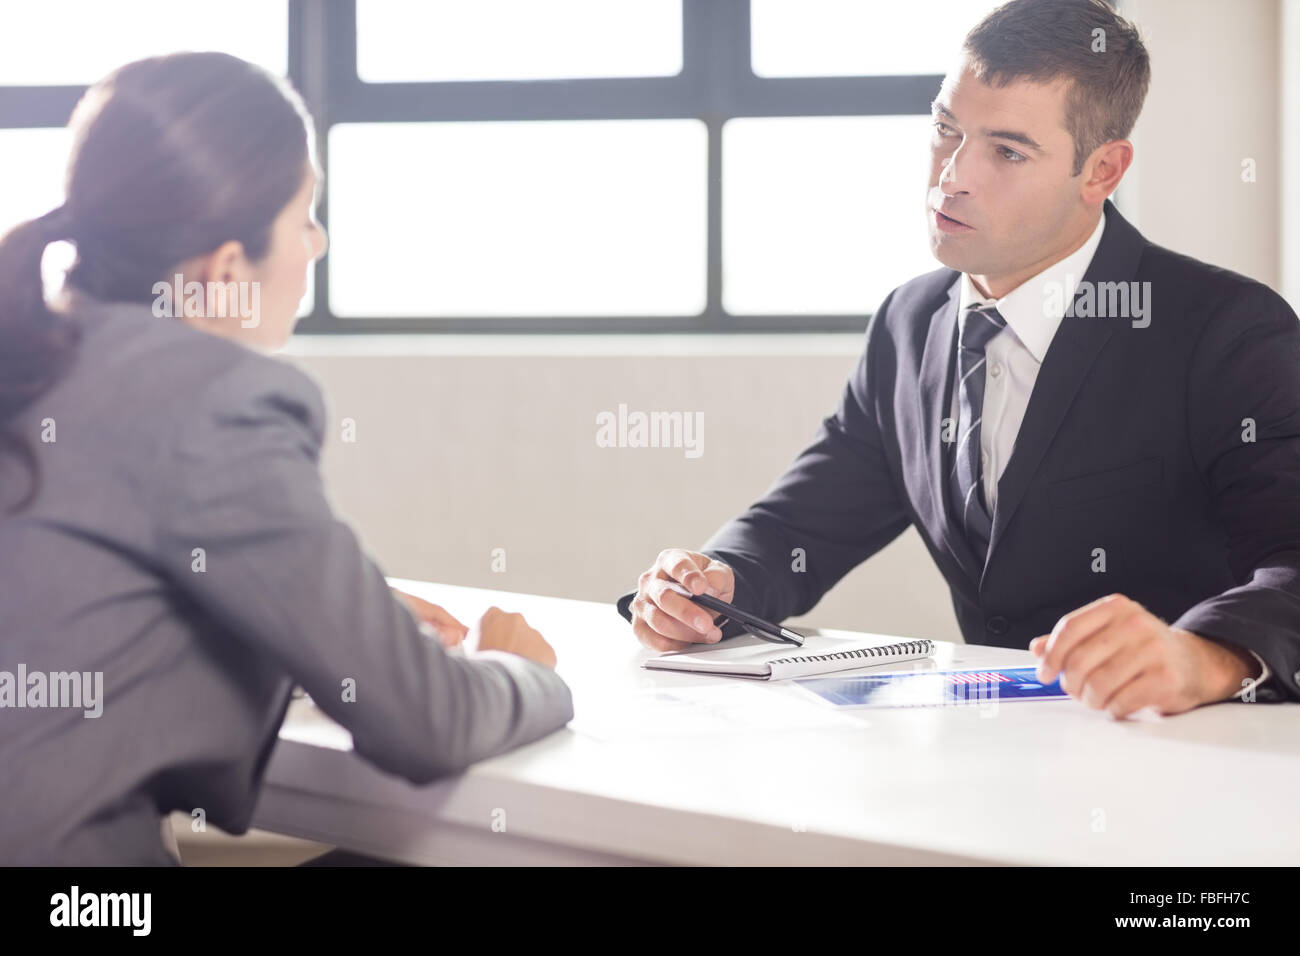 Business people having a conversation - Stock Image